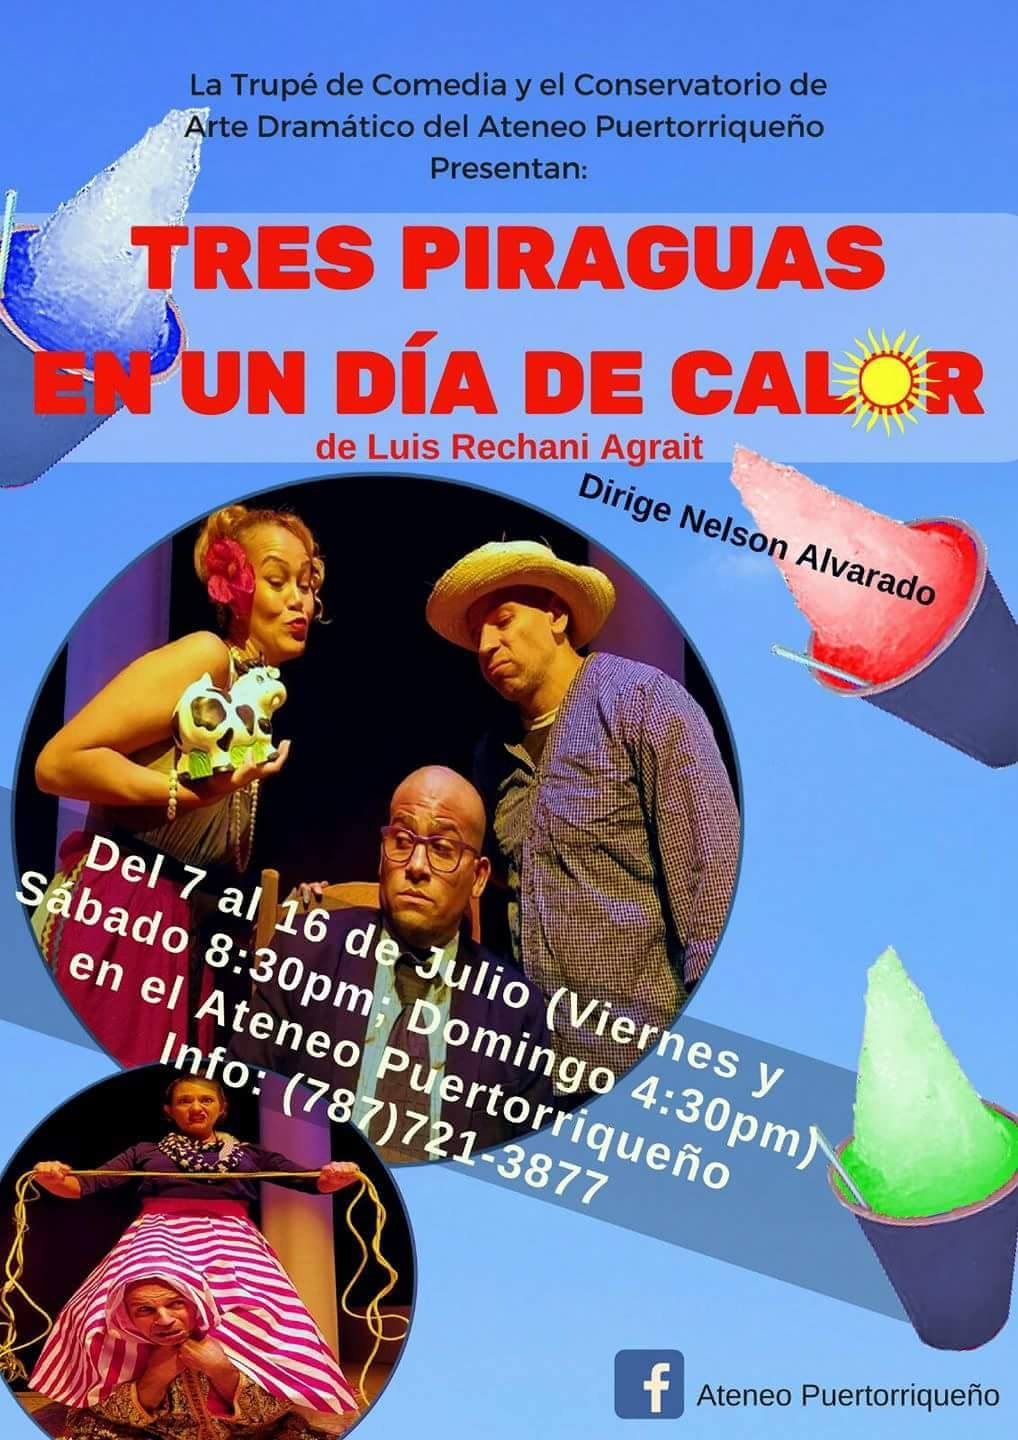 Tres Piraguas en un día de calor flyer event in puerto rico